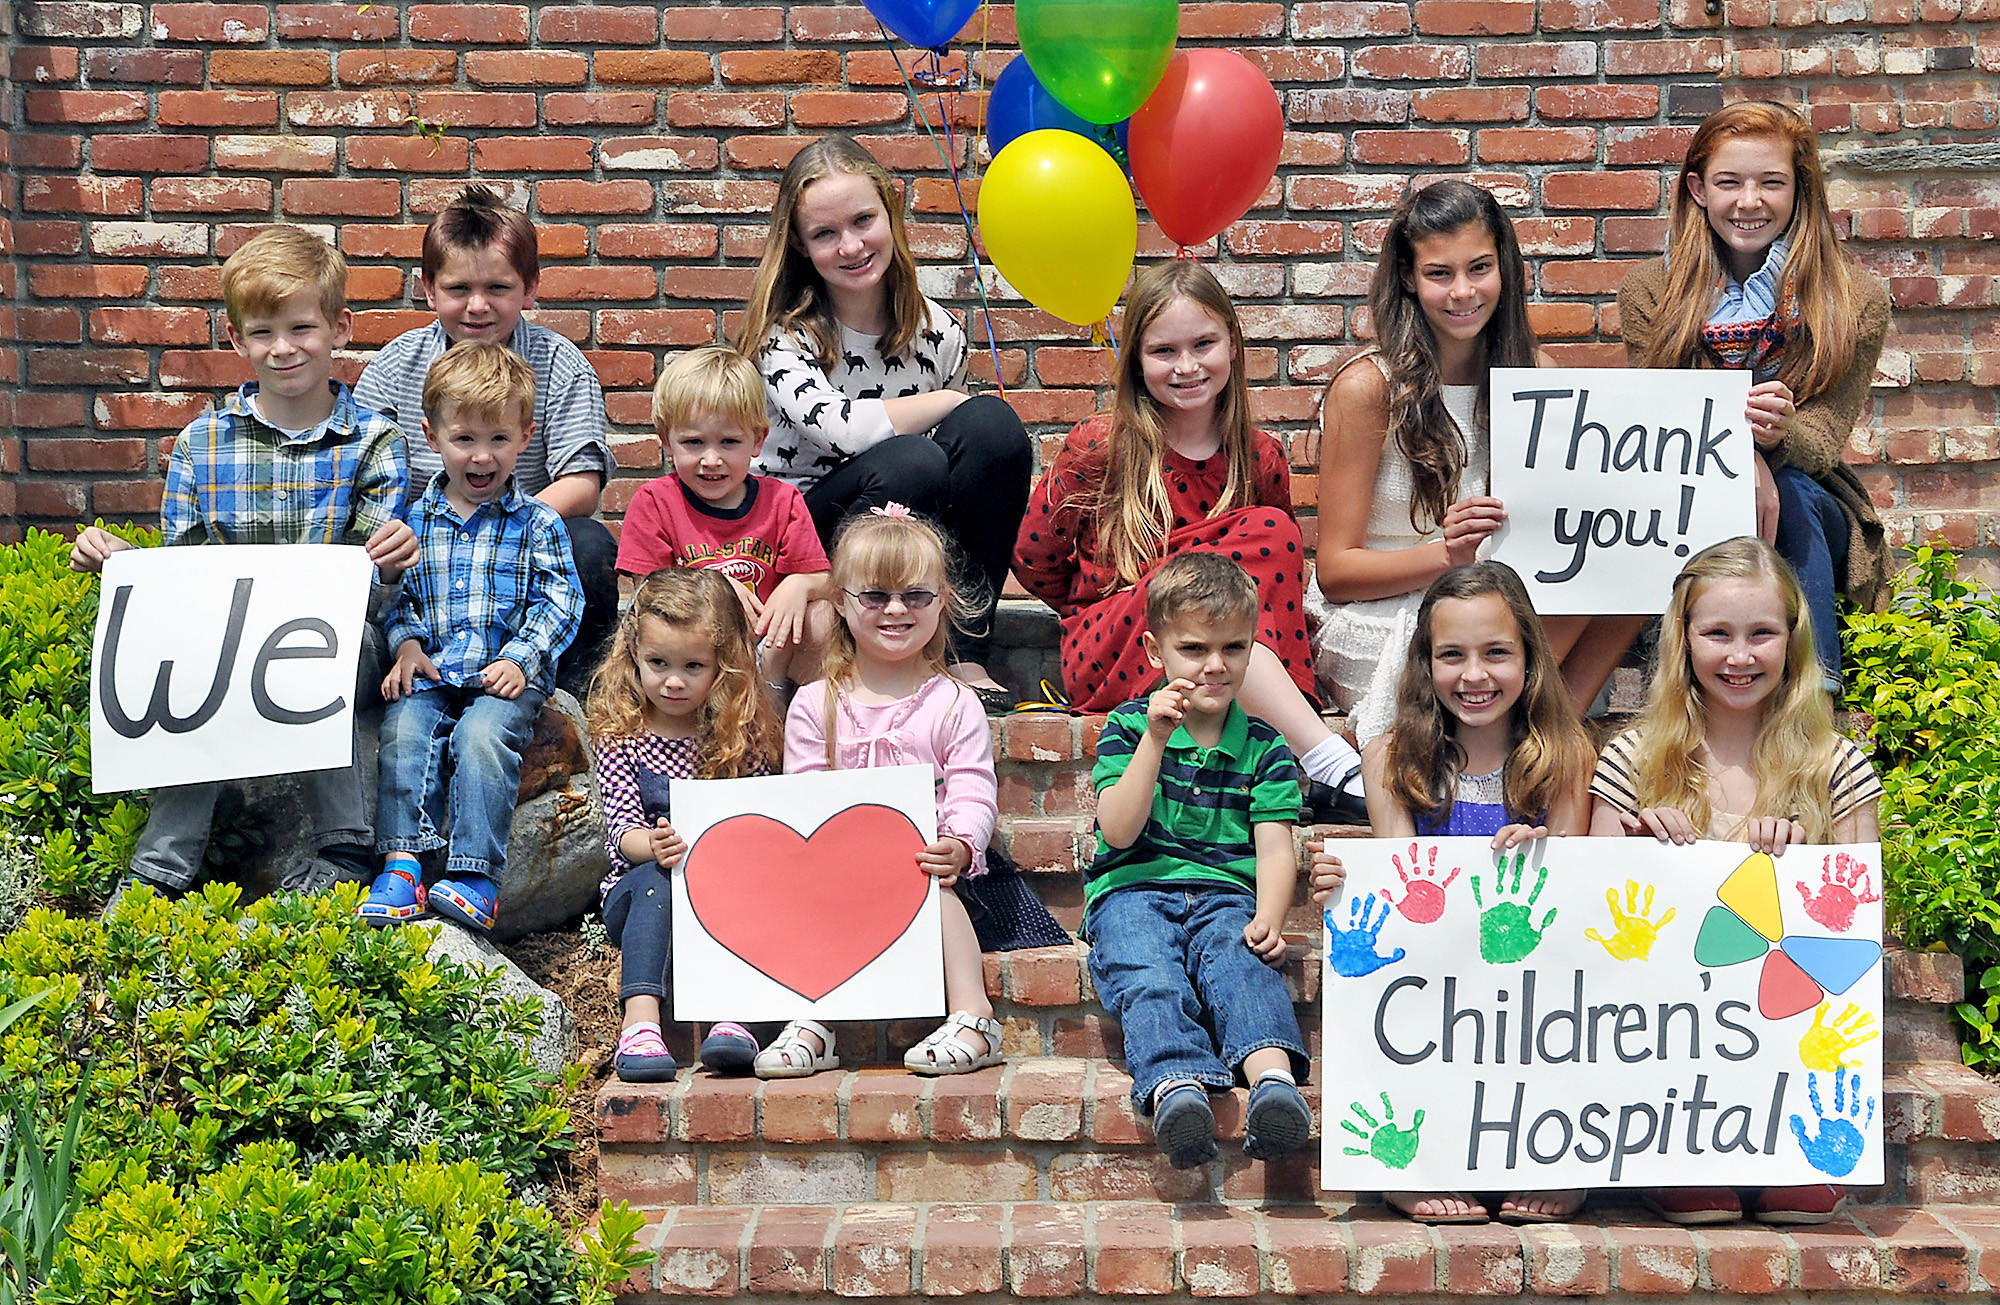 The Flintridge Guild of Children's Hospital is planning a benefit luncheon and boutique to be held May 9. Above are children and grandchildren of Guild members who have been treated at Children's Hospital Los Angeles. Top row, from left, Michael Angelica, Matthew Simone, C.J. Huston, Cassie Huston, Claire Kevorkian and Ellie Dick. Bottome row, from left, Dominic Angelica Grant Doller, Olivia Angelica, Becca Huston, Matthew Hanna, Lauren Gmelich and Sophia McLoughlin.